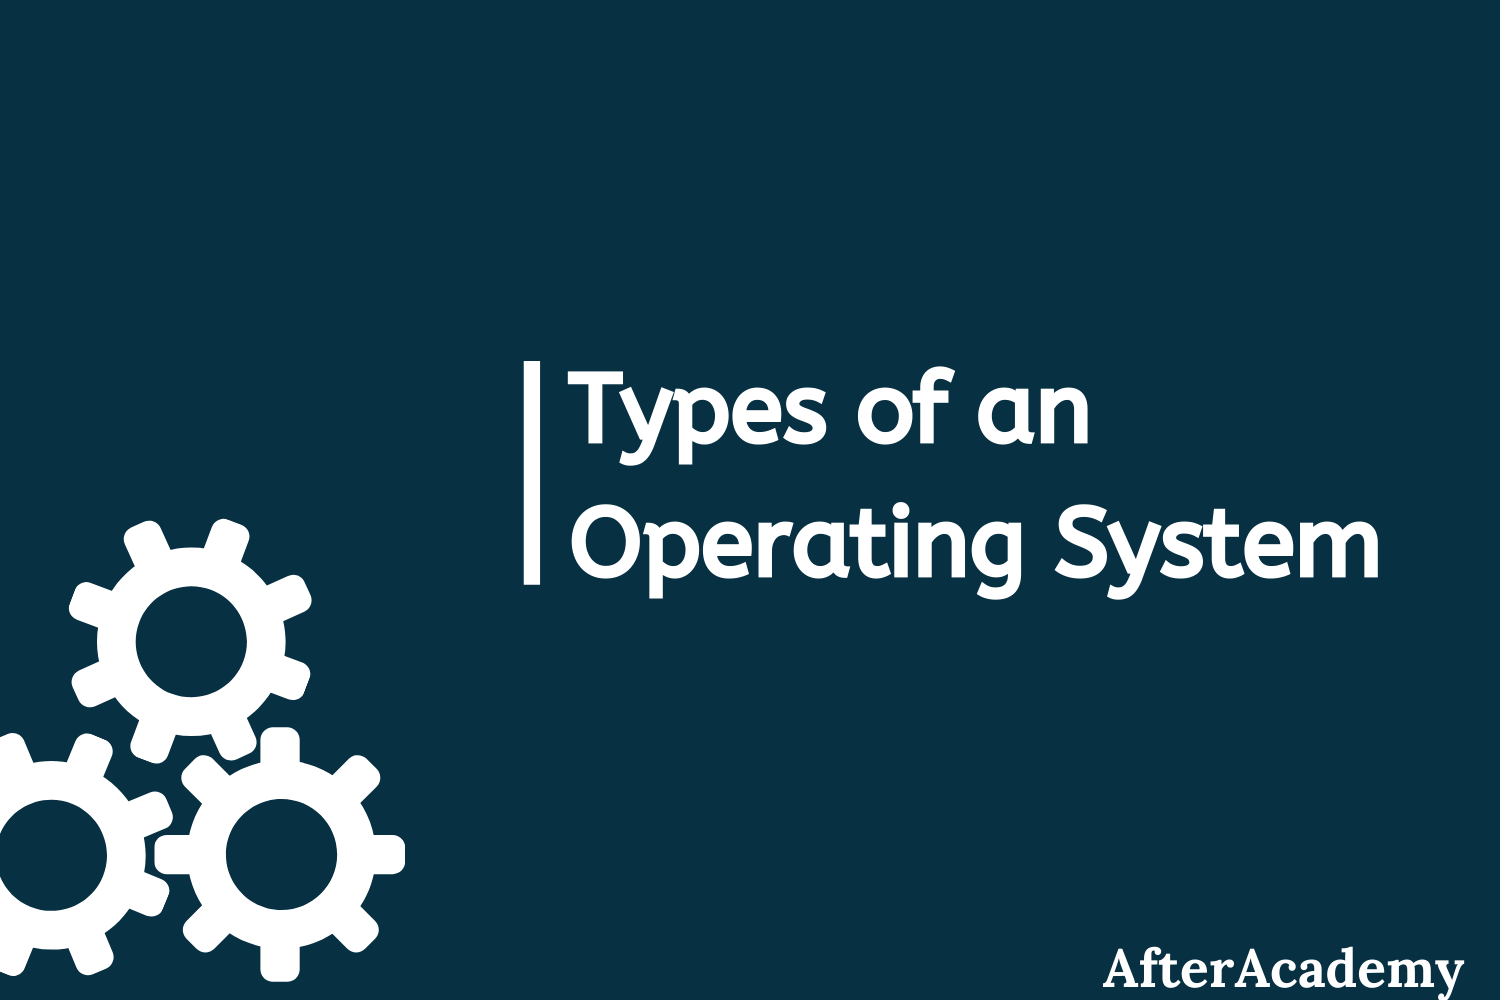 What are the types of an Operating System?